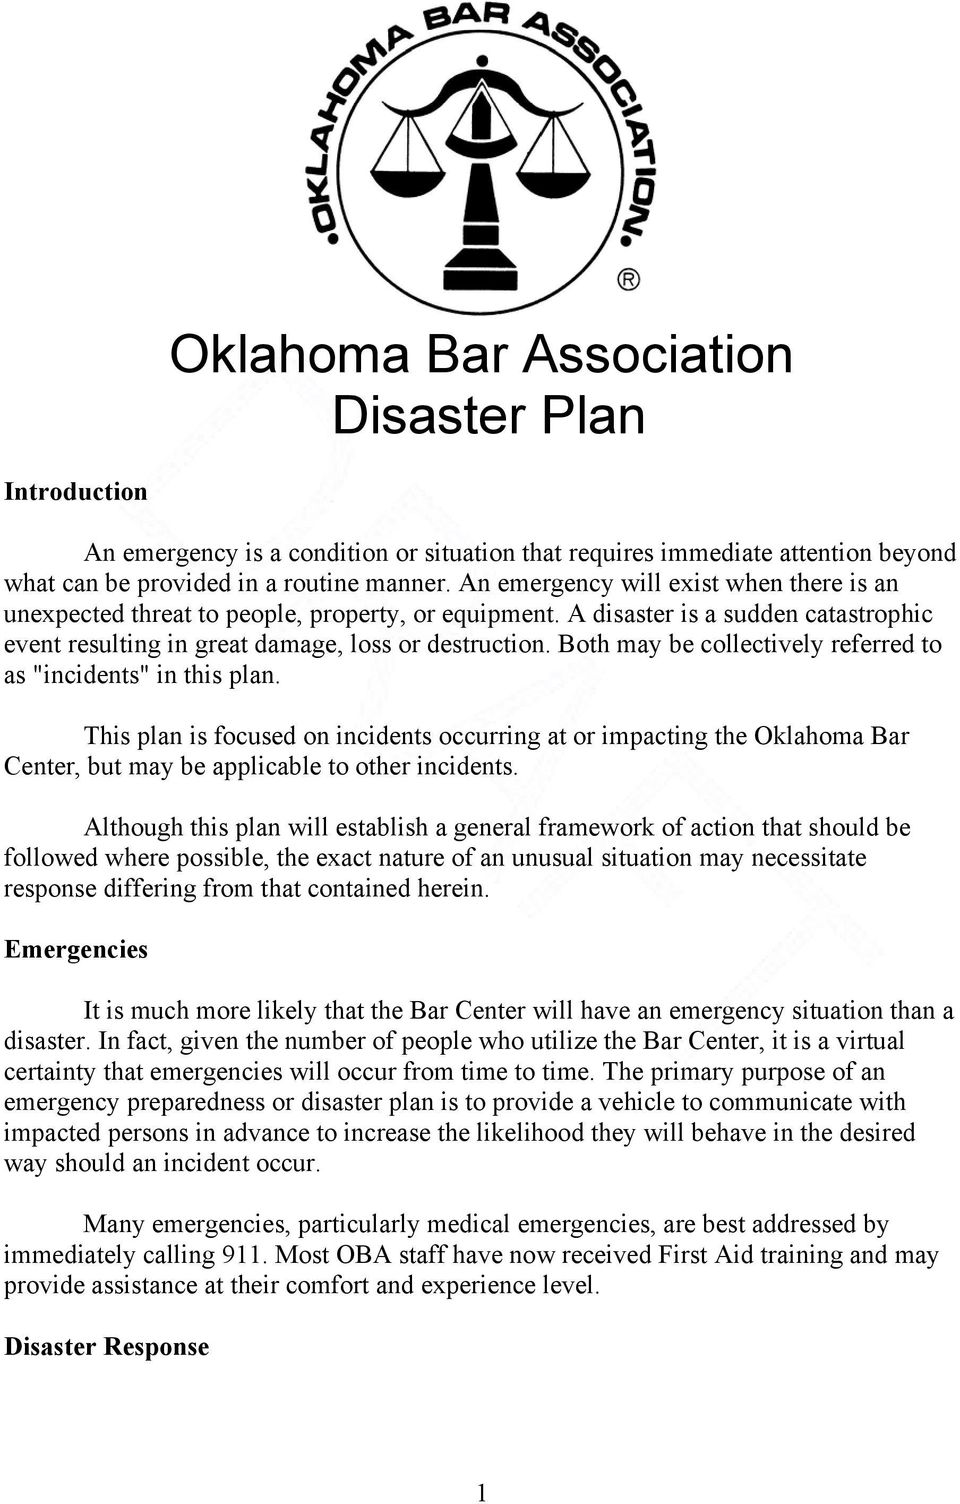 "Both may be collectively referred to as ""incidents"" in this plan. This plan is focused on incidents occurring at or impacting the Oklahoma Bar Center, but may be applicable to other incidents."